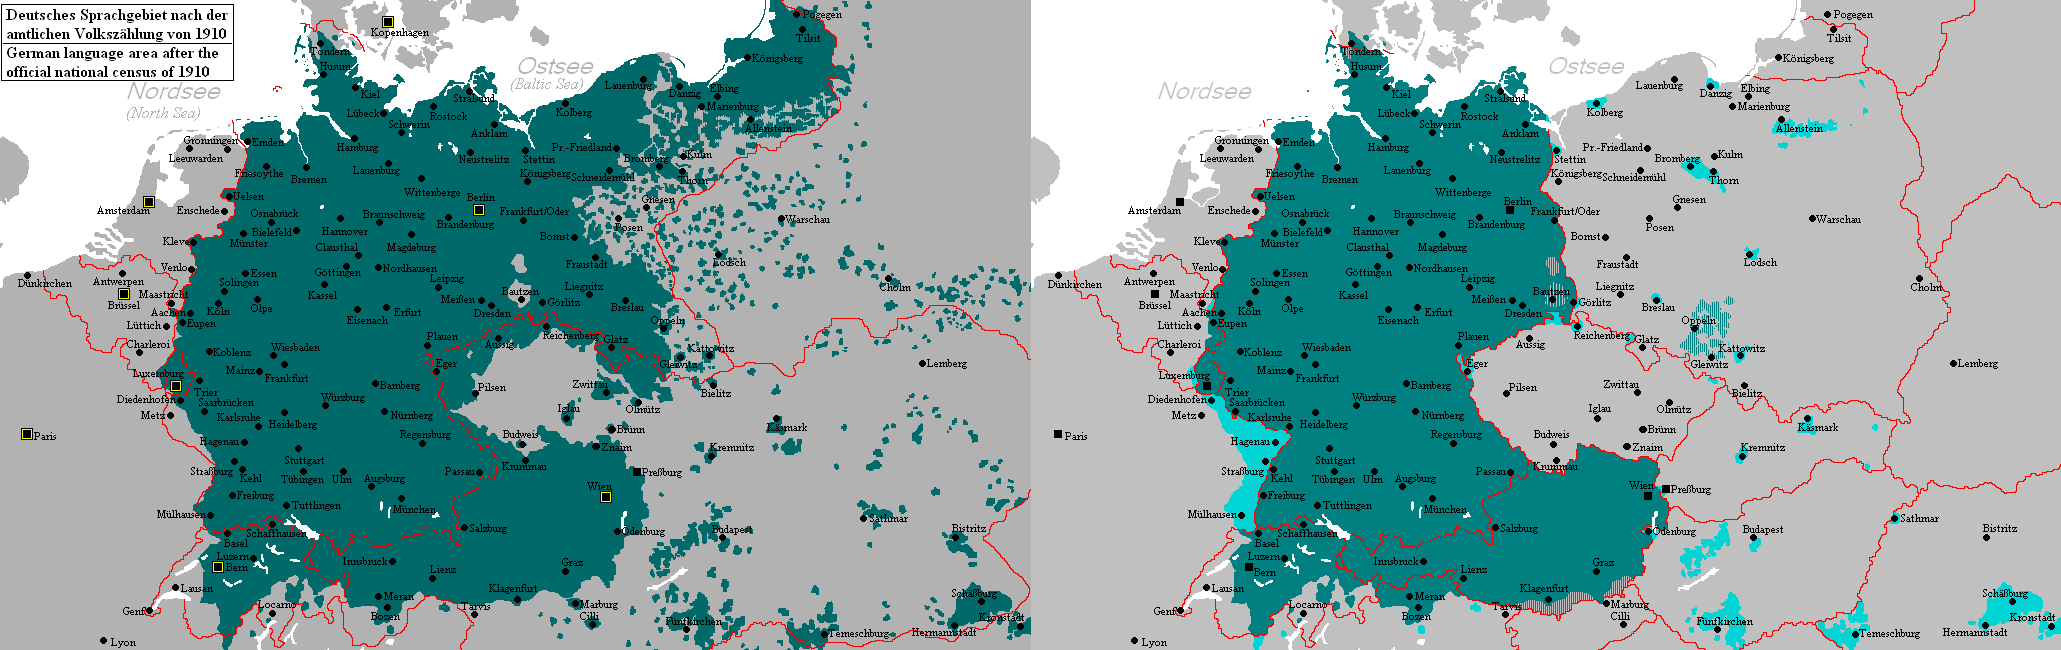 German Language Area Before After The World Wars Germany - Before and after world